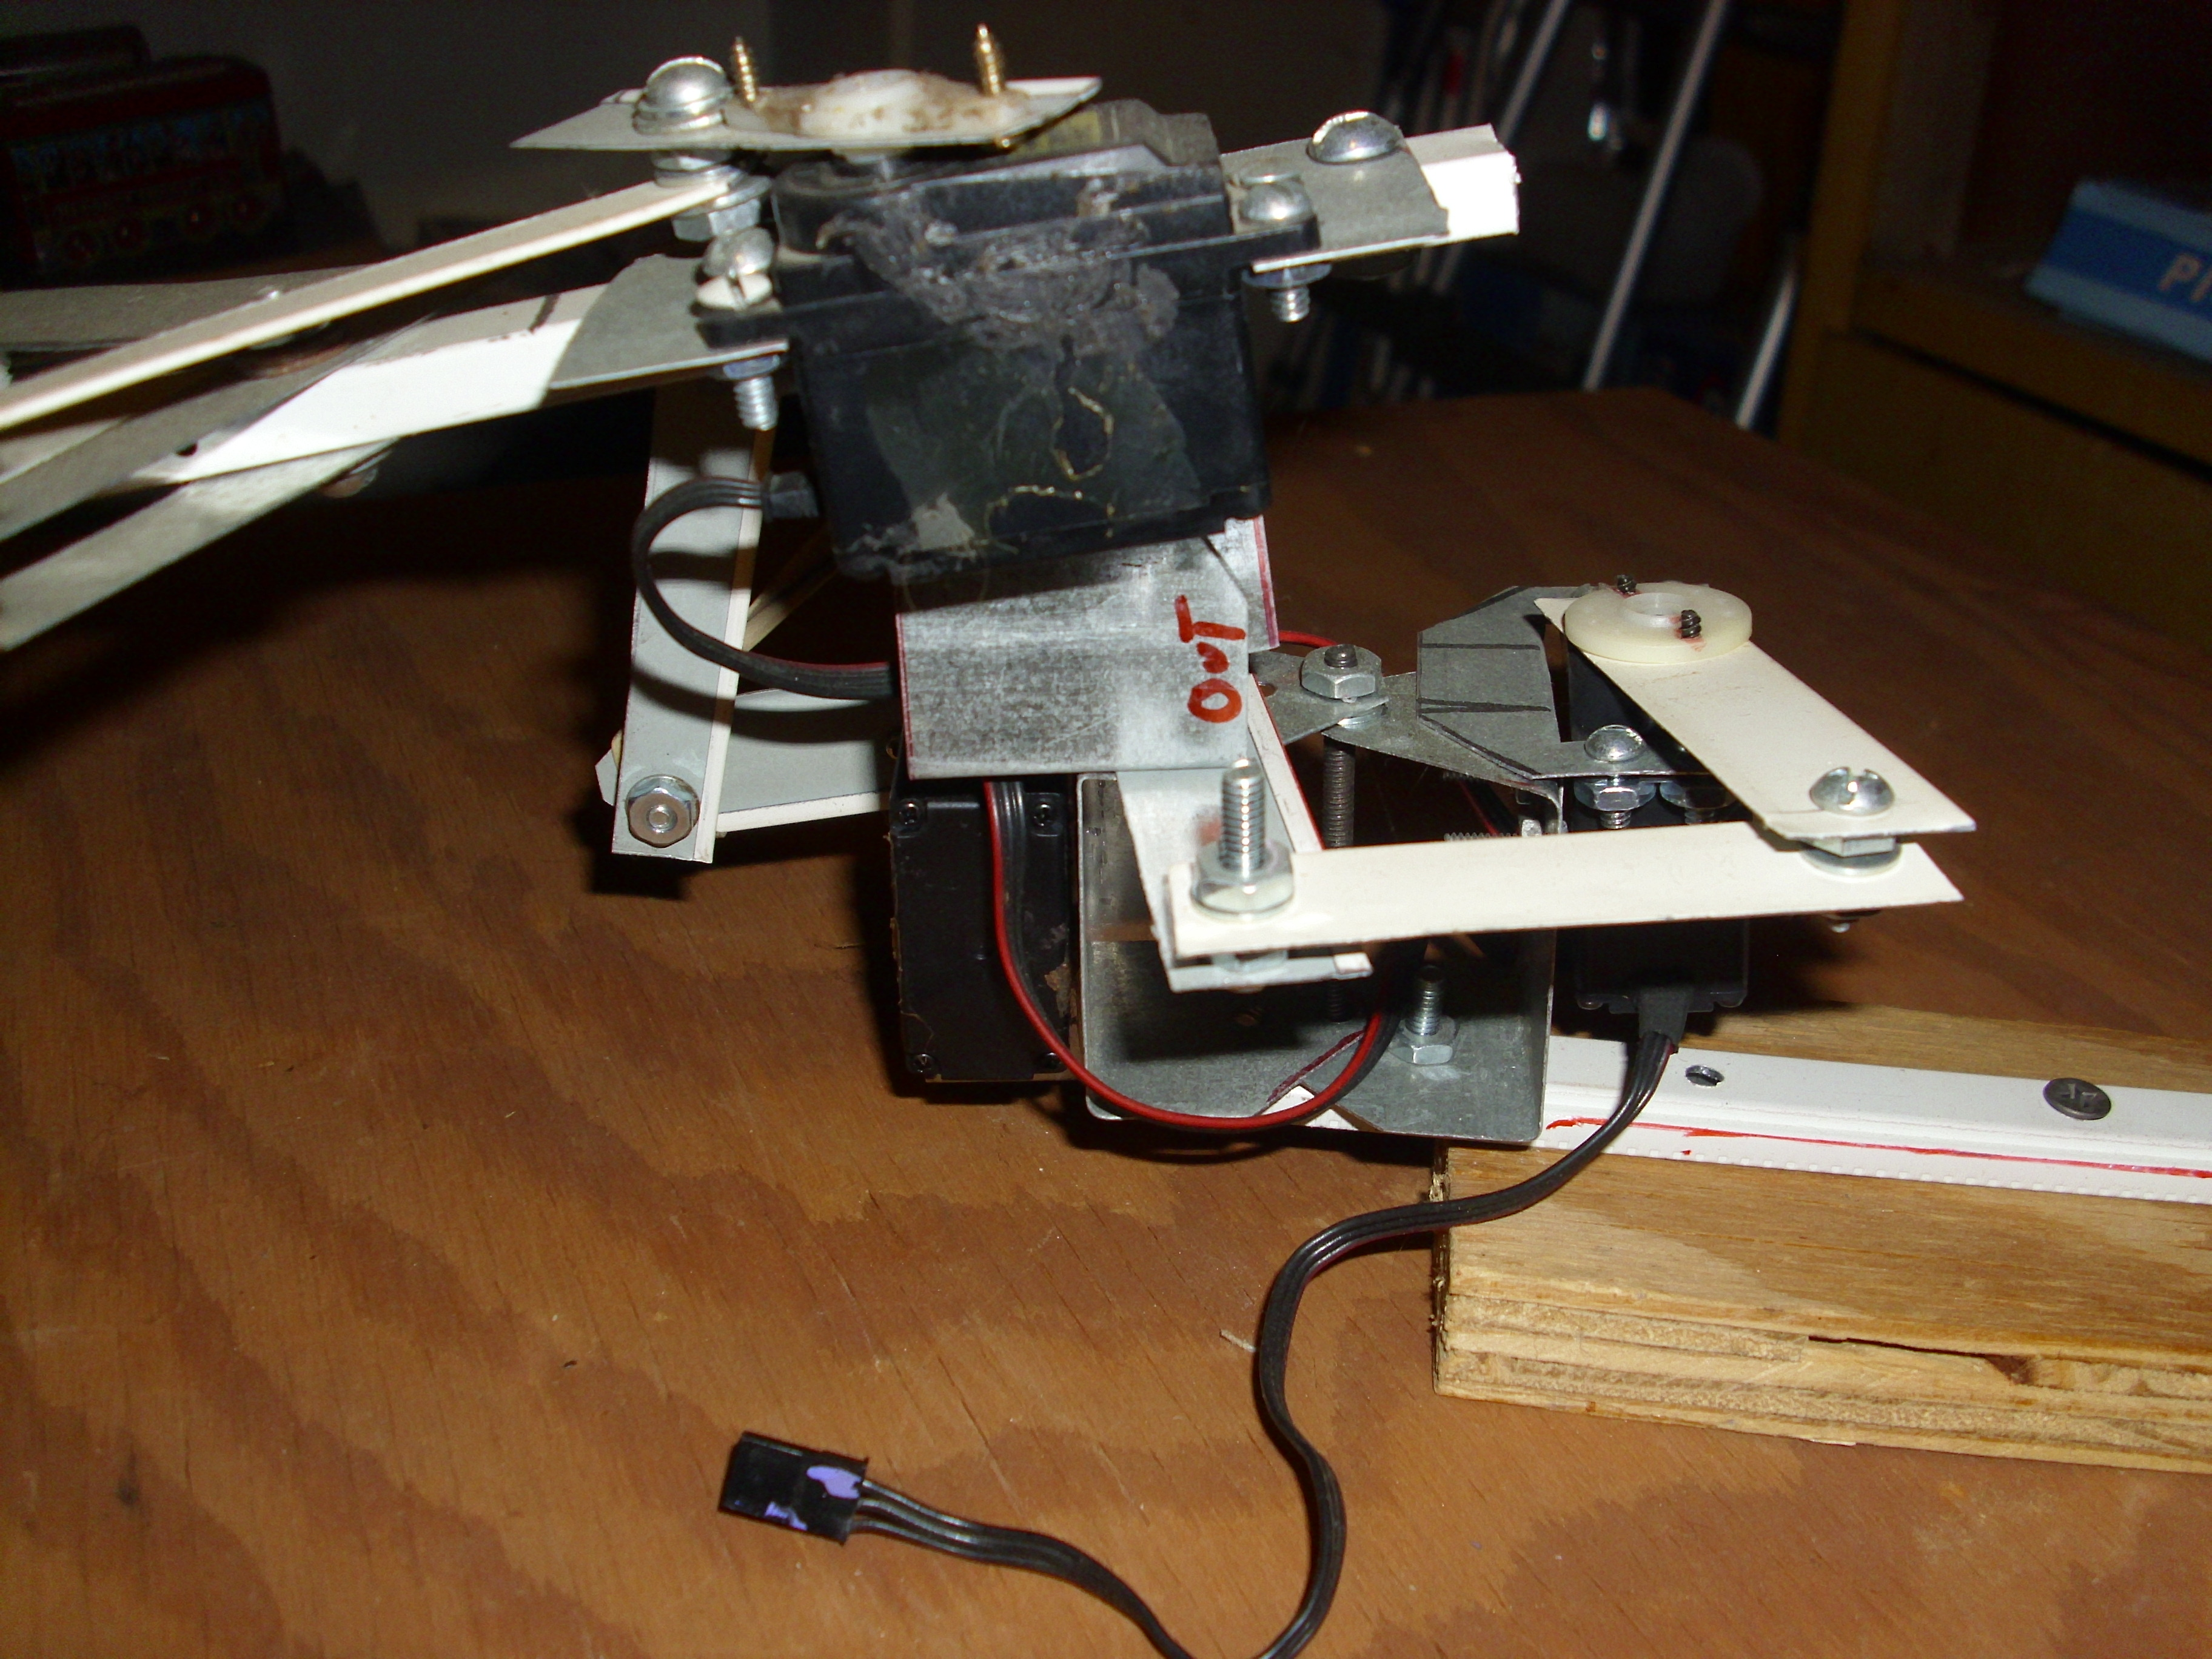 Picture of Views of Finished Remote Controlled Gripper